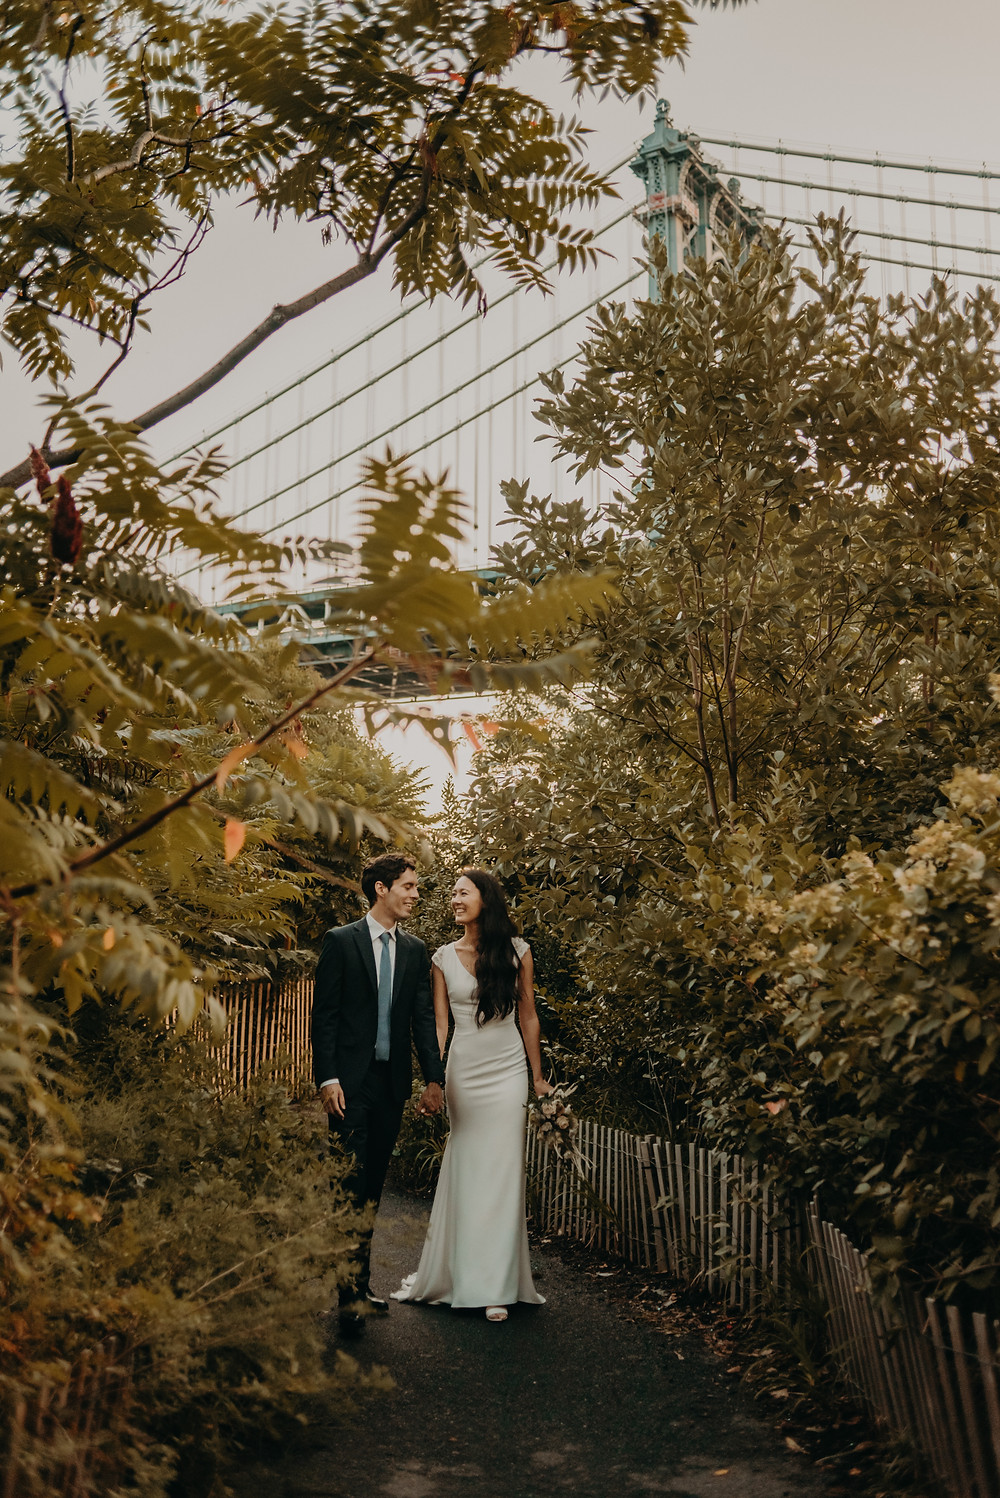 Destination Bridal Session in NYC